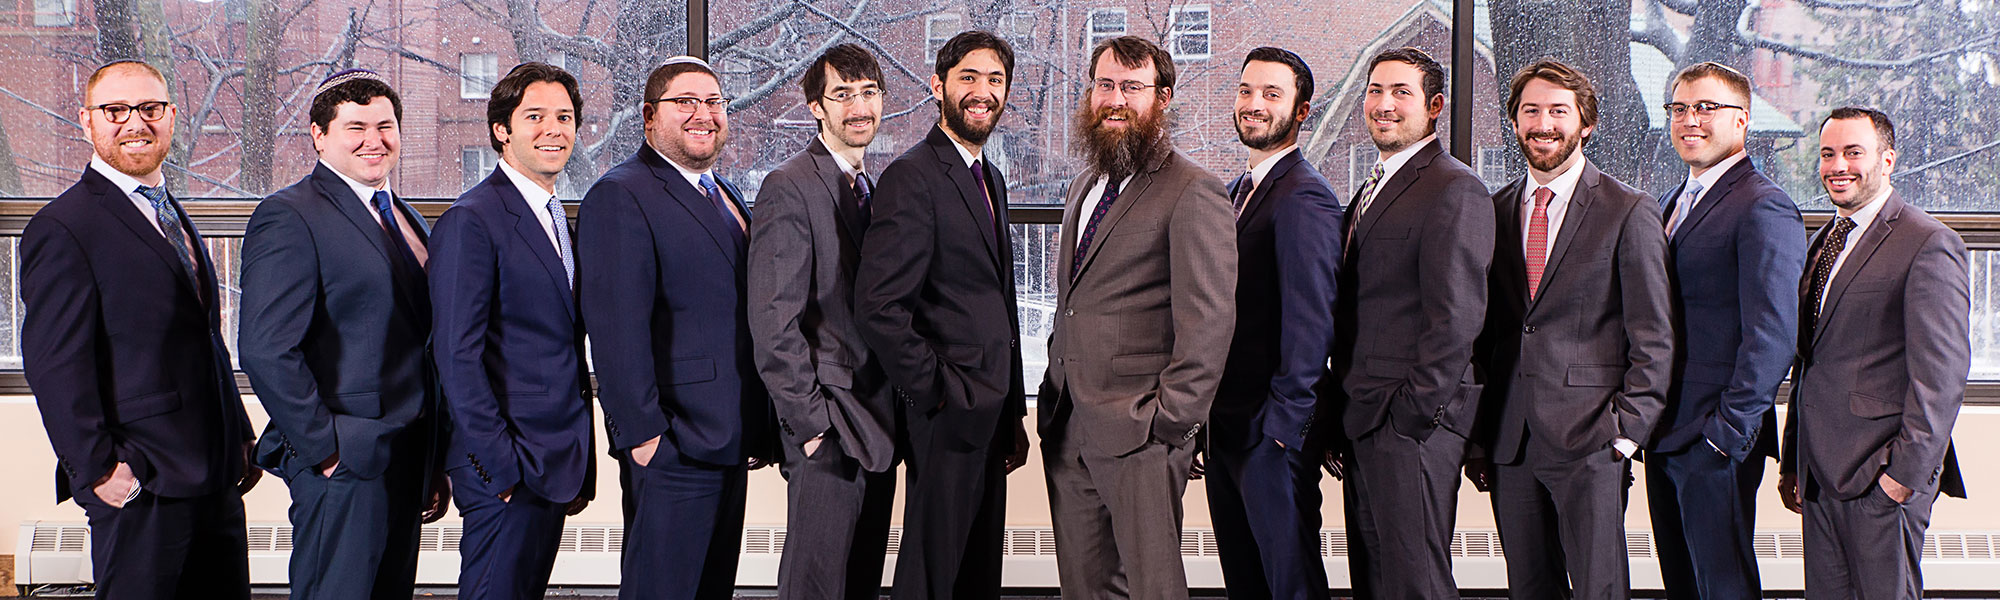 Meet Our Students - Yeshivat Chovevei Torah, Setting the standard in rabbinic leadership